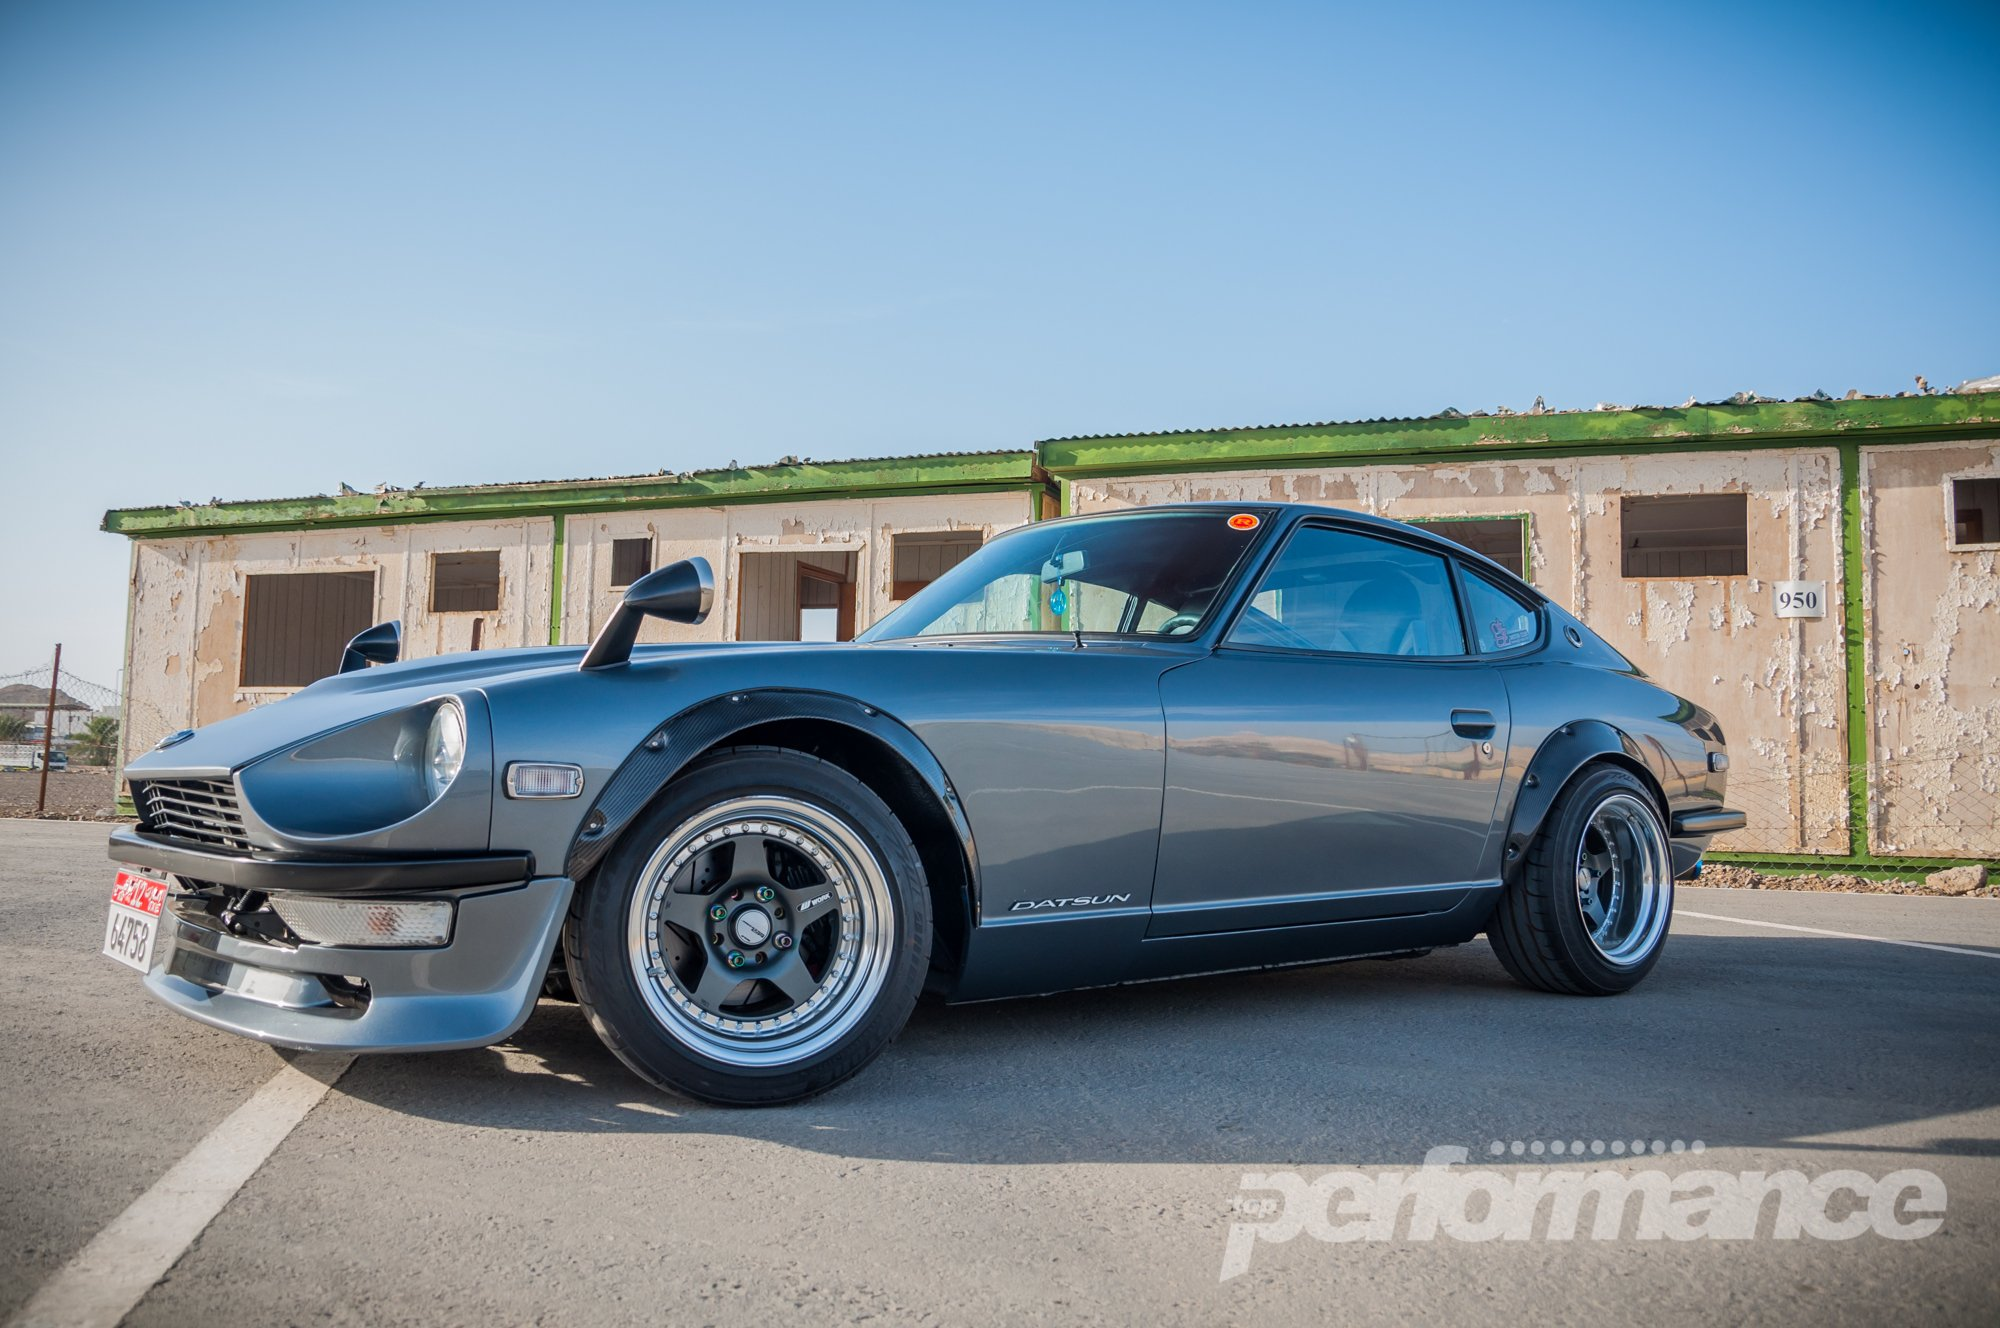 Nissan Datsun 240z Coupe Japan Tuning Cars Fairlady